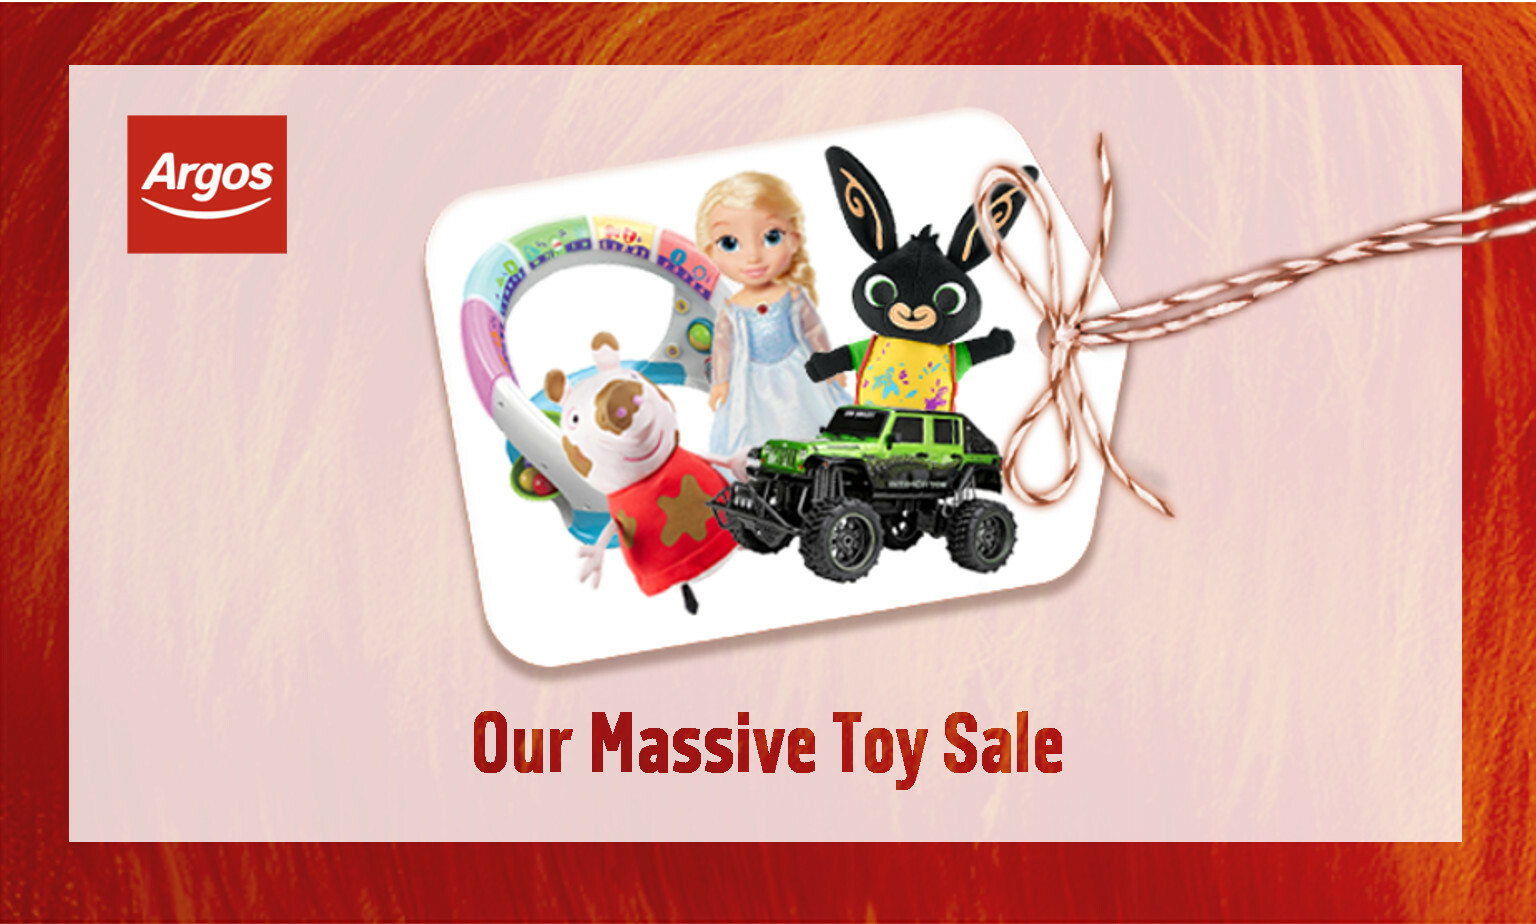 Our Massive Toy Sale